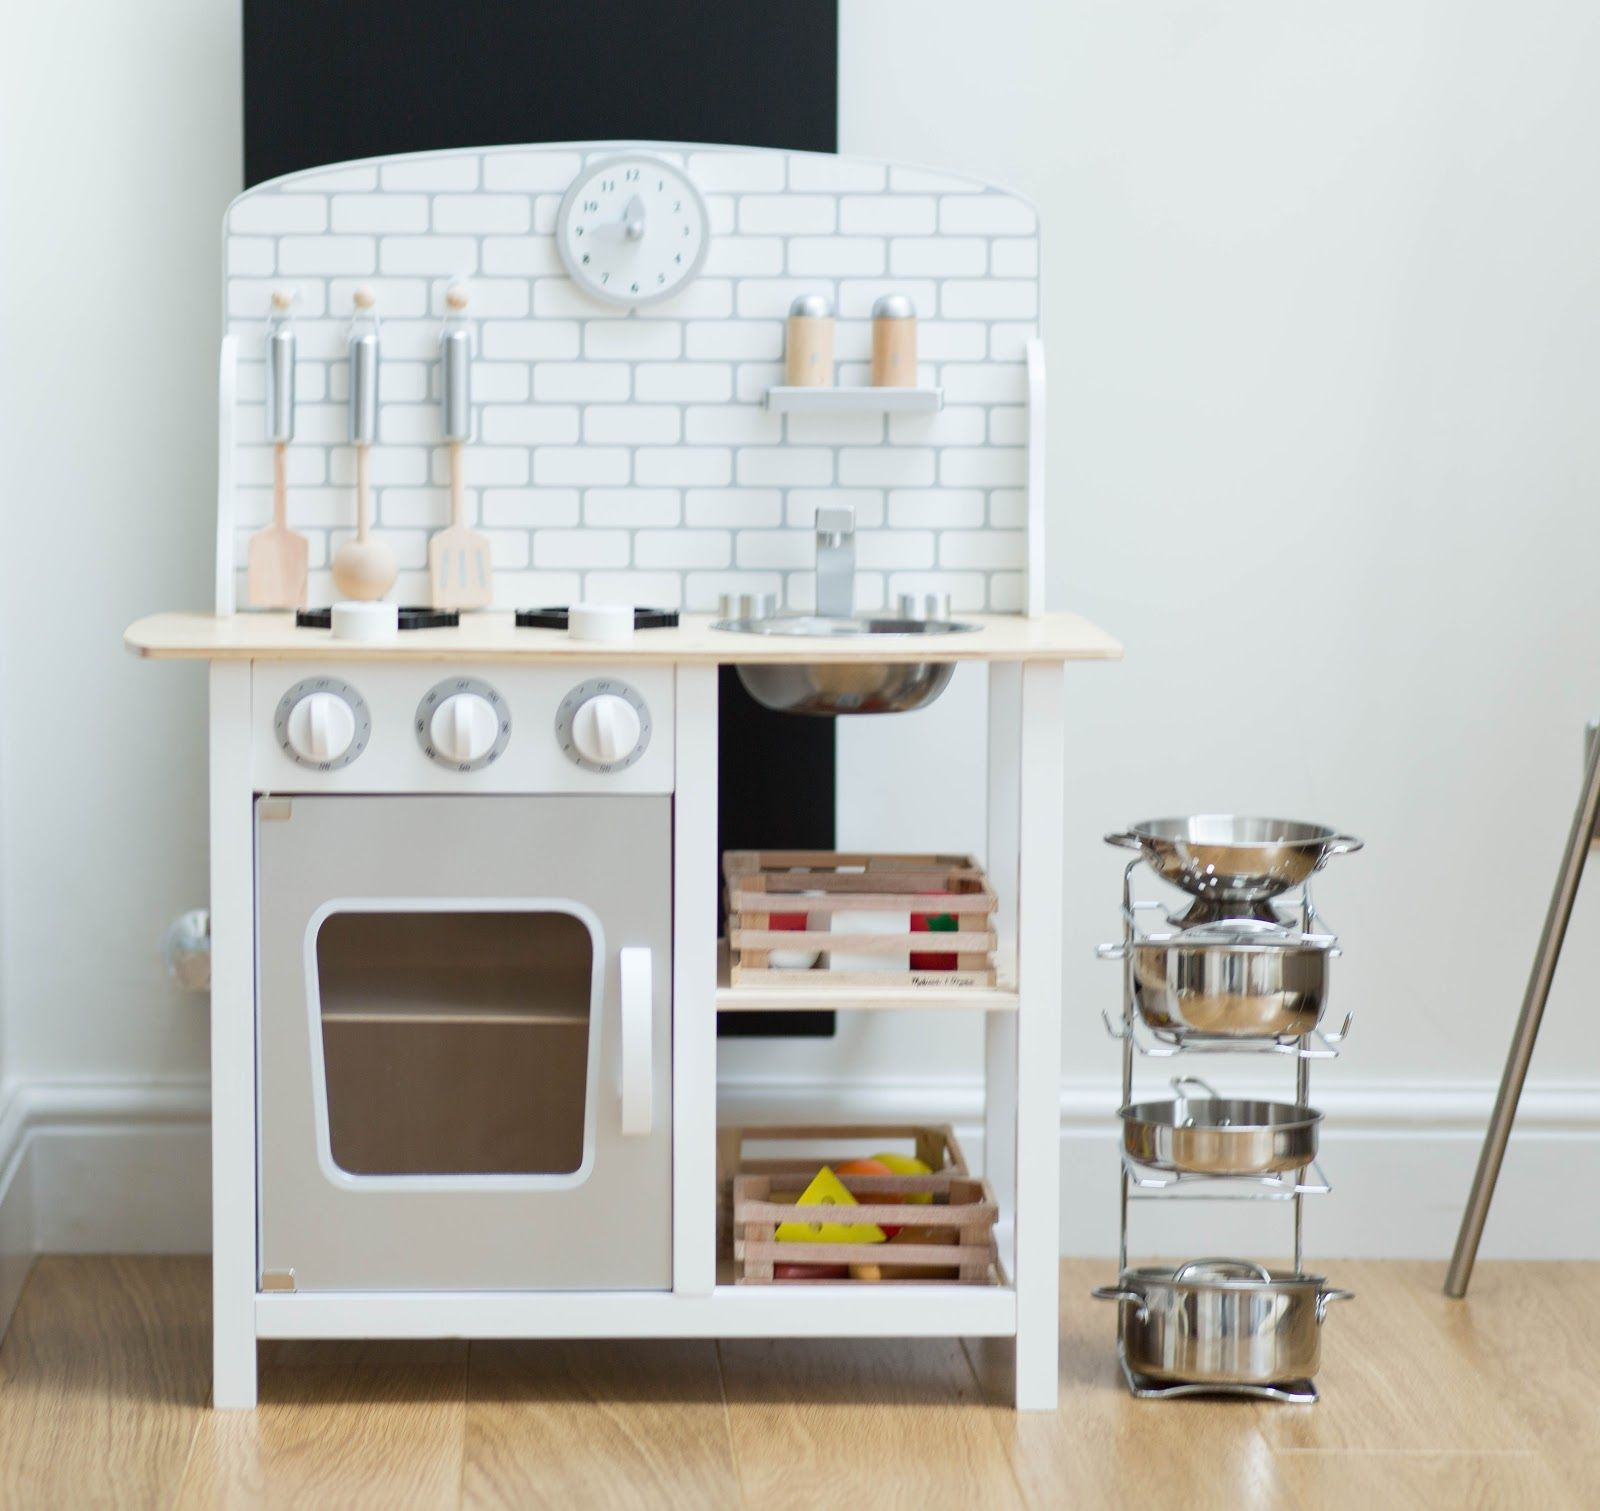 Sugar Cube Play Kitchen | Kids Space | Pinterest | Playrooms ...